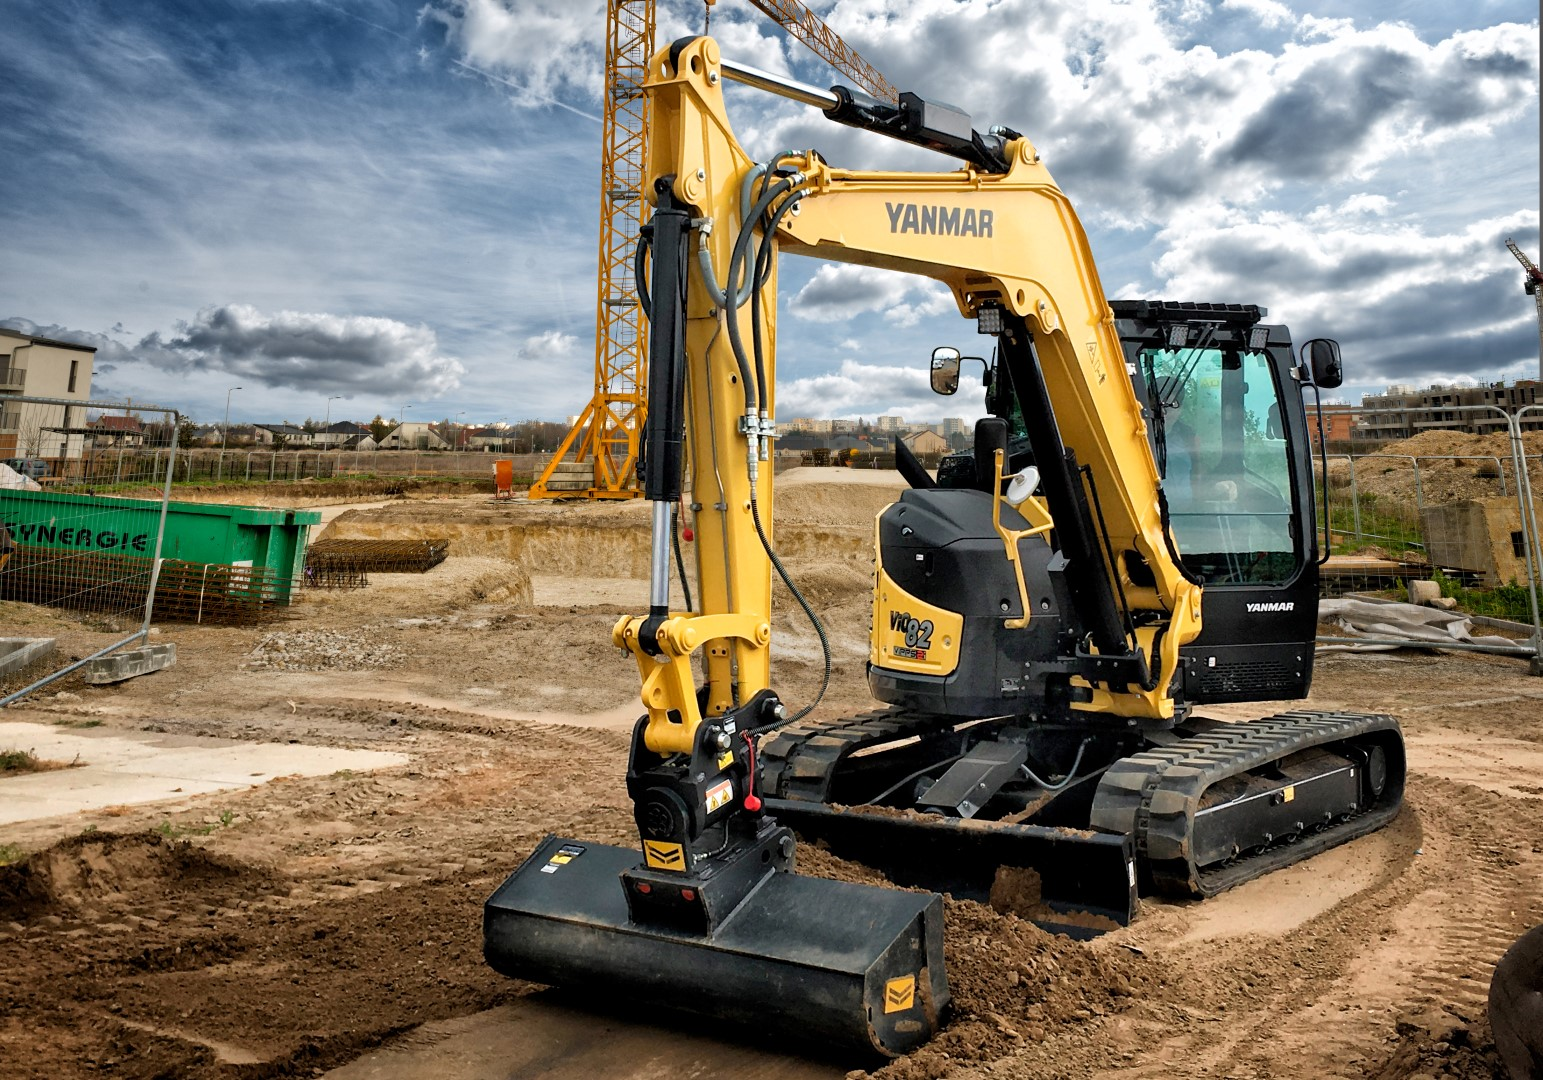 Since 1912 Yanmar has designed and built the engines which power the wold of construction plant machinery. Now in 2019 over 66% of all excavators under 10.0 tonnes are powered by Yanmars landmark engines. At MTS Plant we have spent more than 30 years bringing customers the best of new and second-hand machinery with value, service and support to match. Now as the official dealer of Yanmar excavators you've got access to tried and tested build quality and reliability. All with the infrastructure to deliver machinery and parts as and when you need them. Click below to browse our range online: